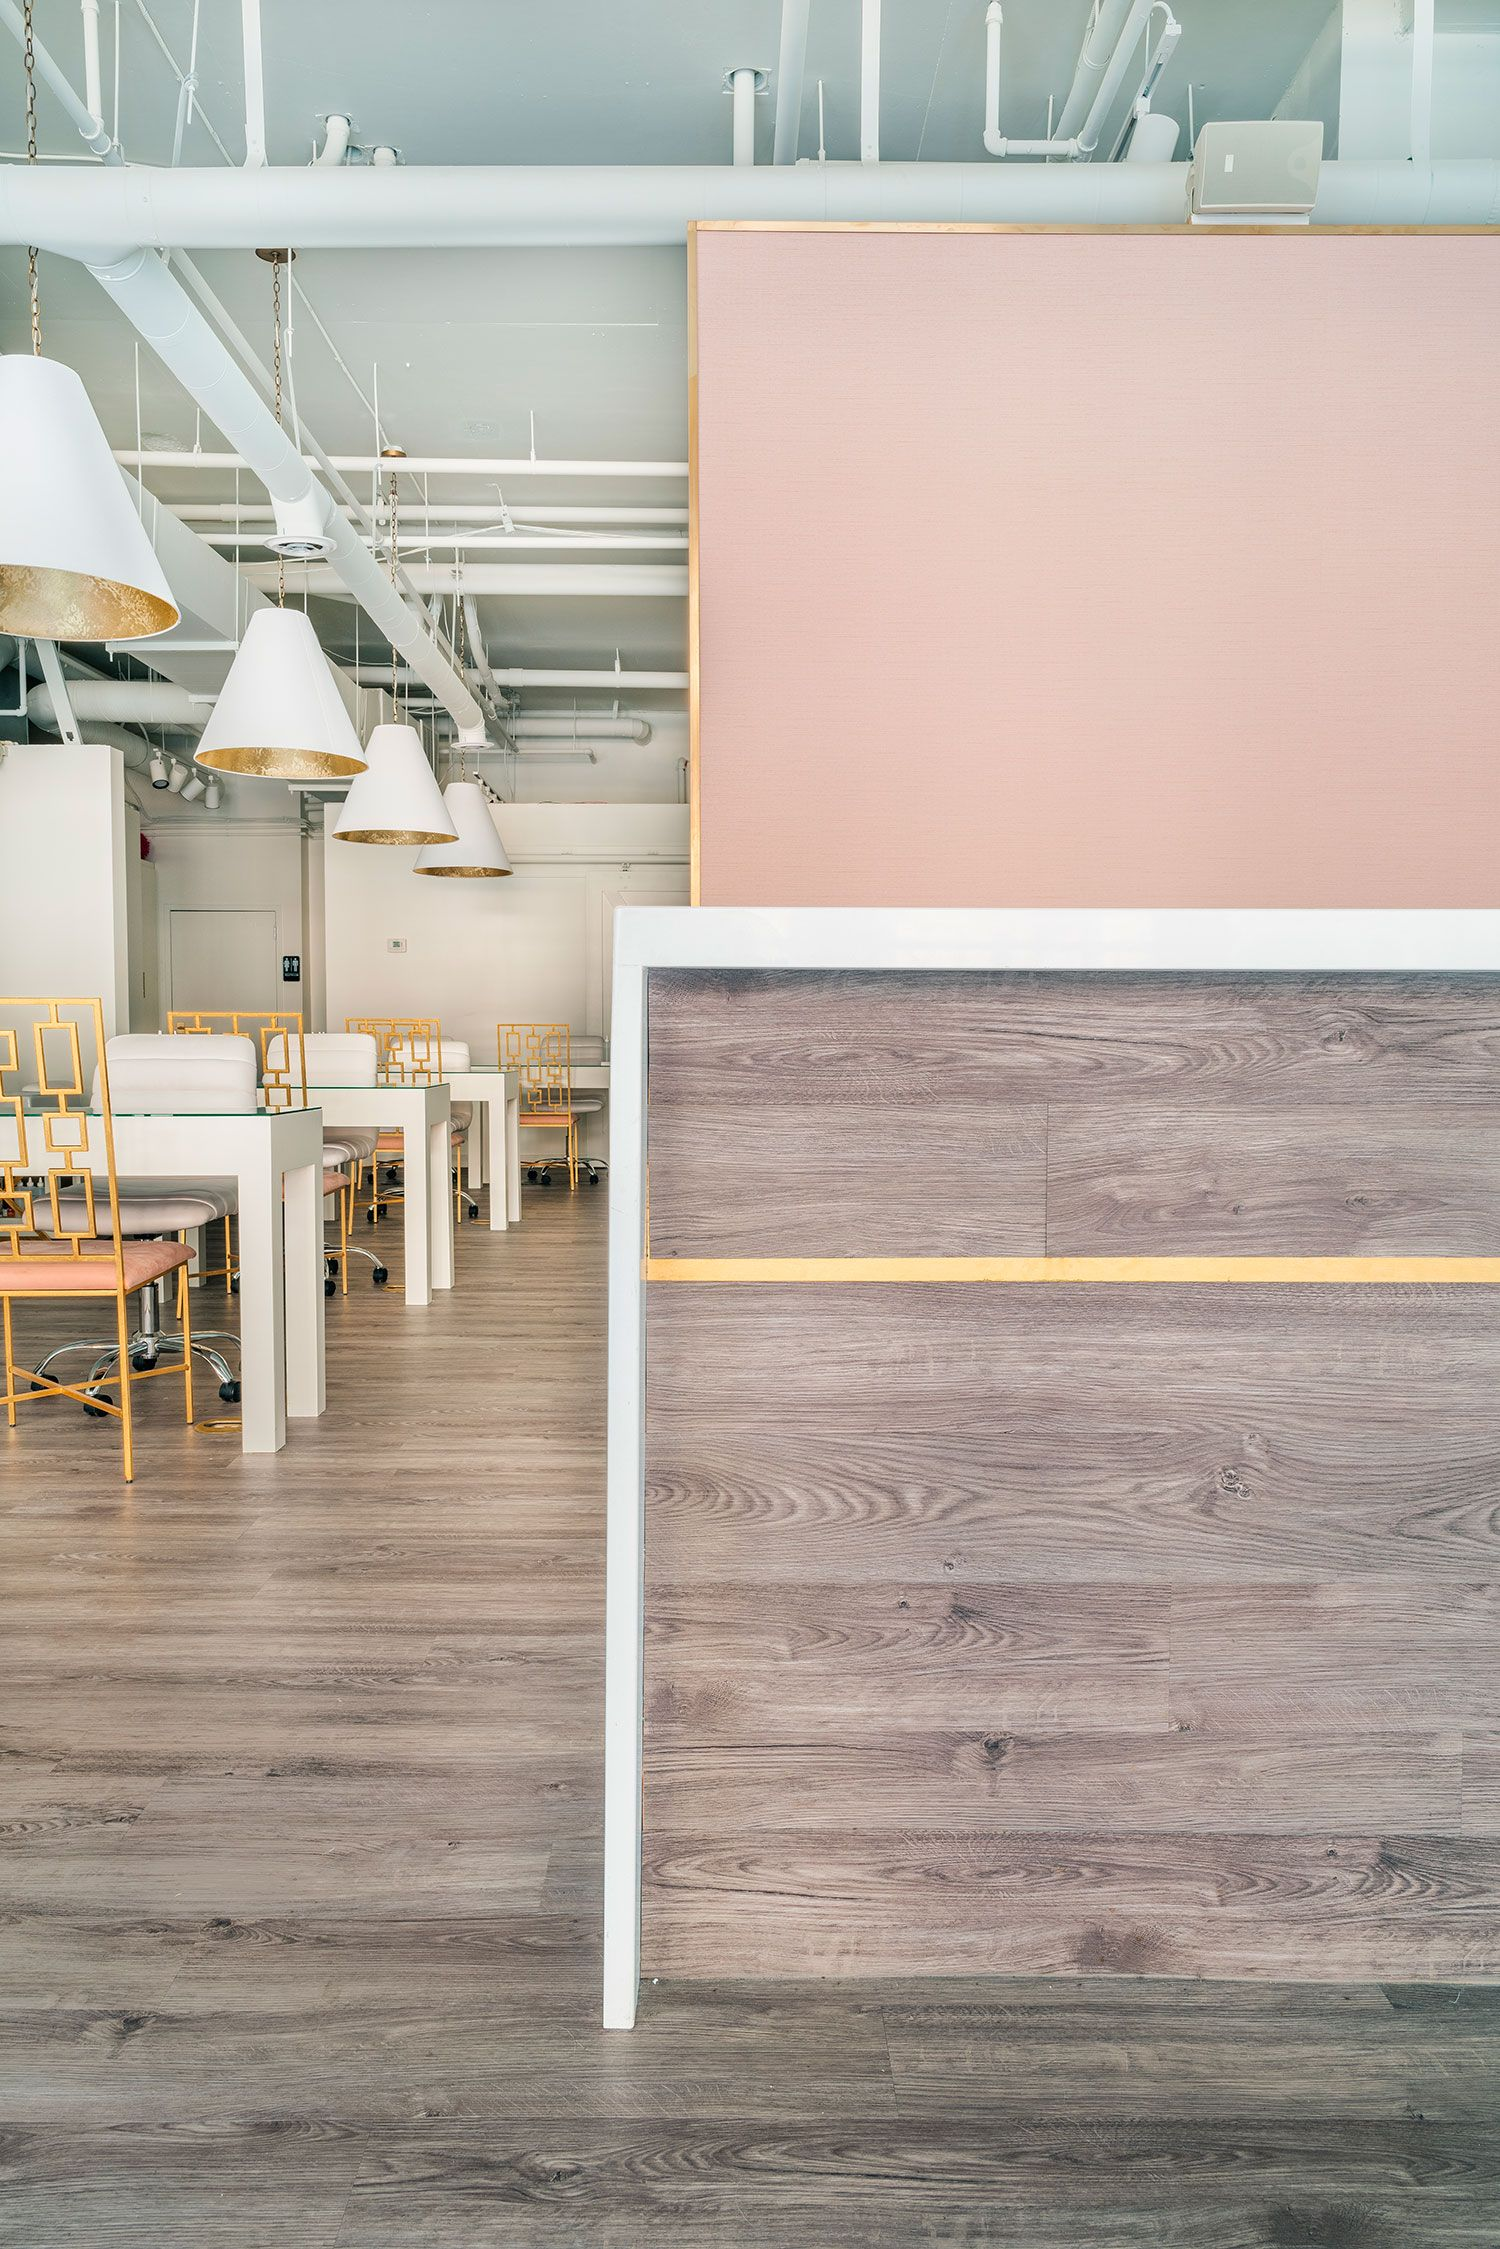 Paintbase in raleigh nc rue mag nail salon design - Nail salon interior design photos ...